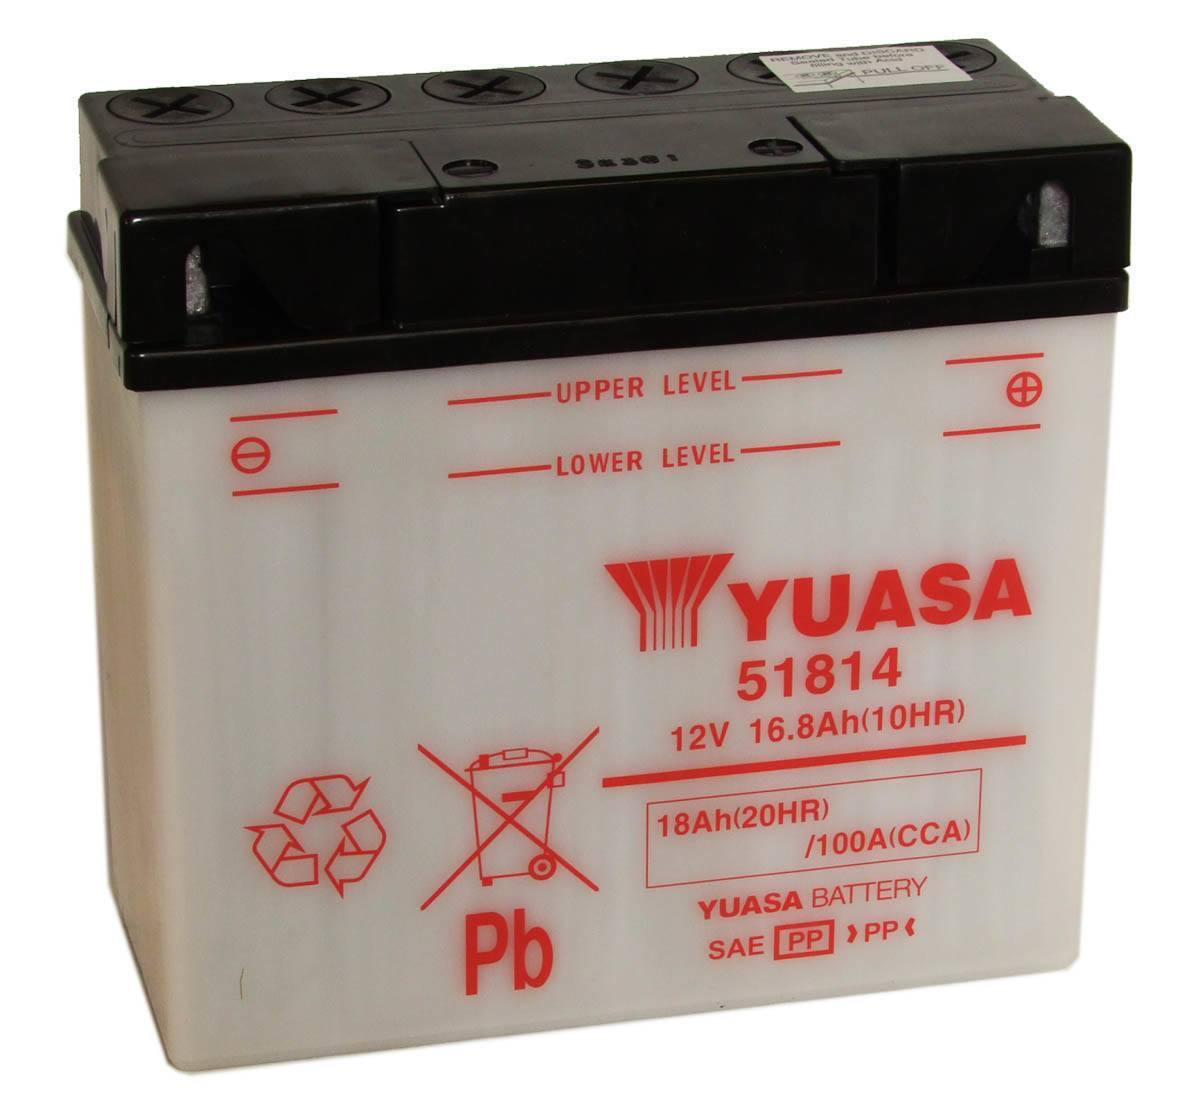 Yuasa 51814 12V BMW Motorcycle Battery